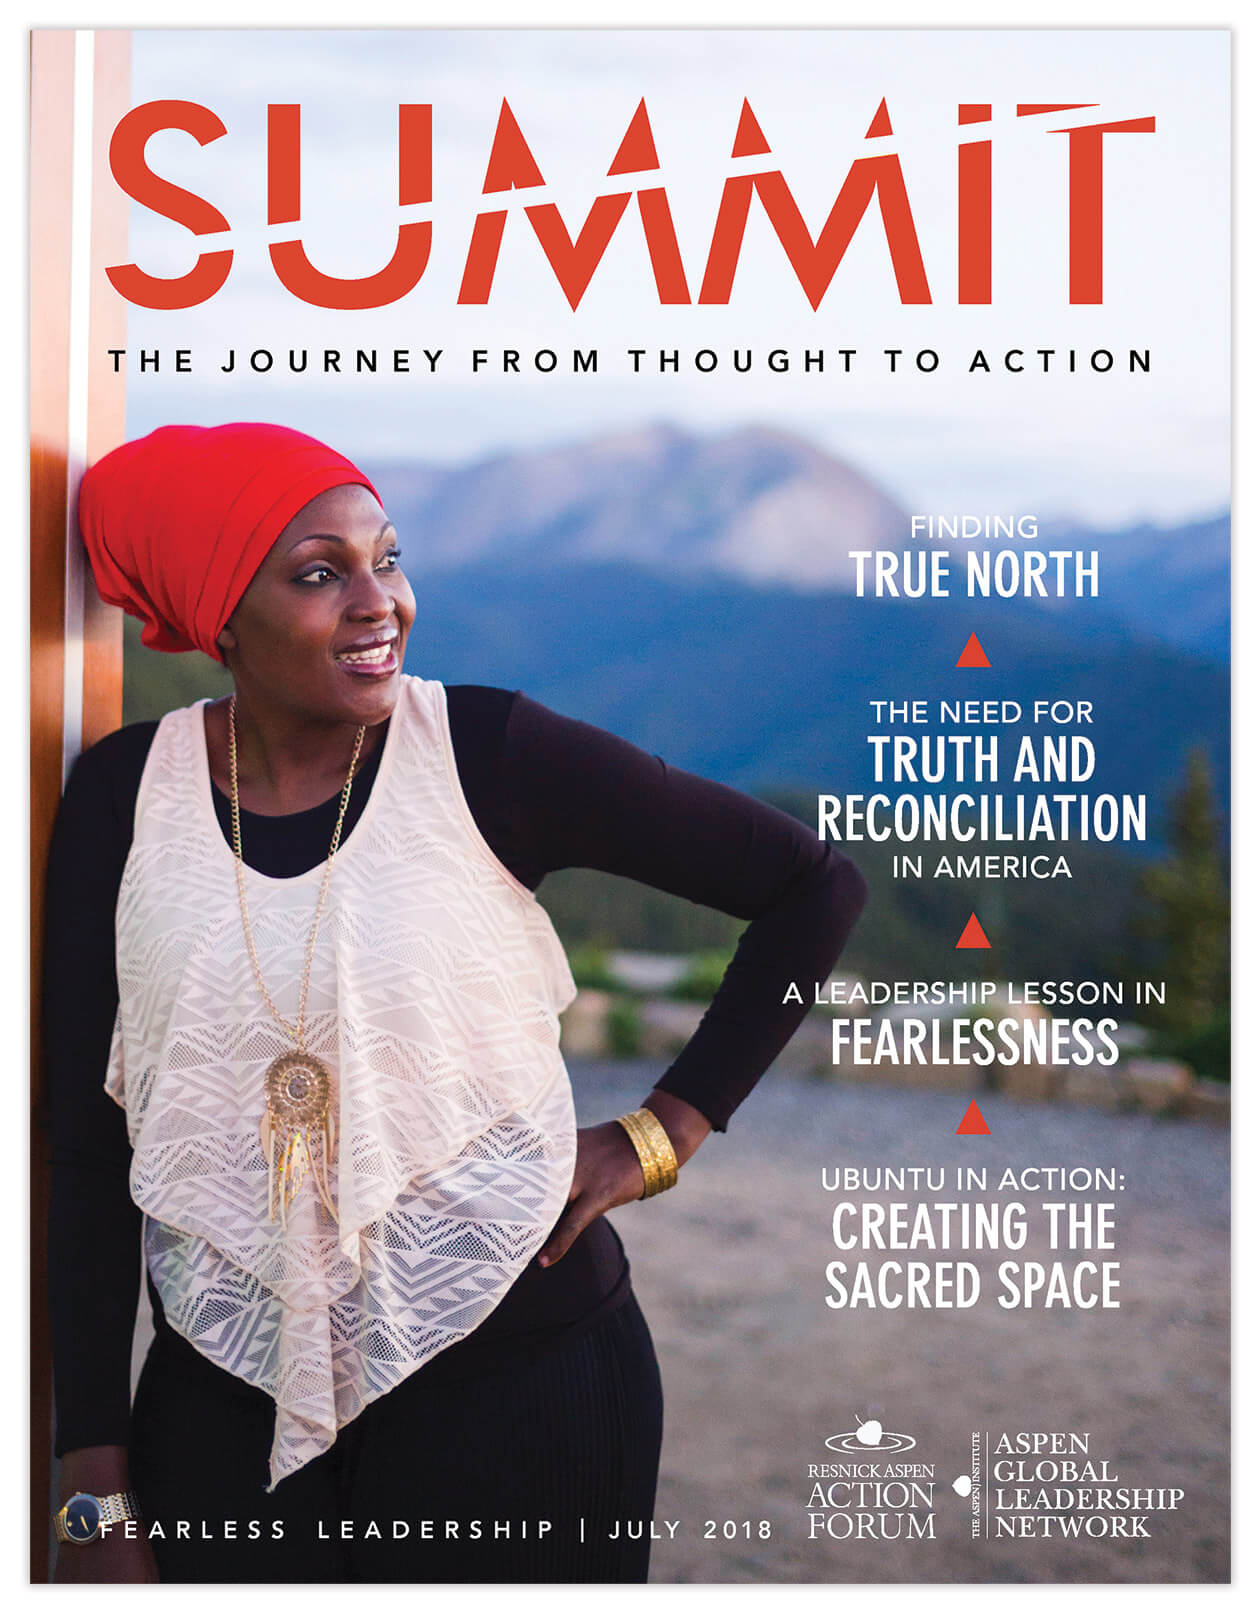 Resnick Aspen Action Forum Summit Magazine Cover | Magazine Design by the Qurious Effect